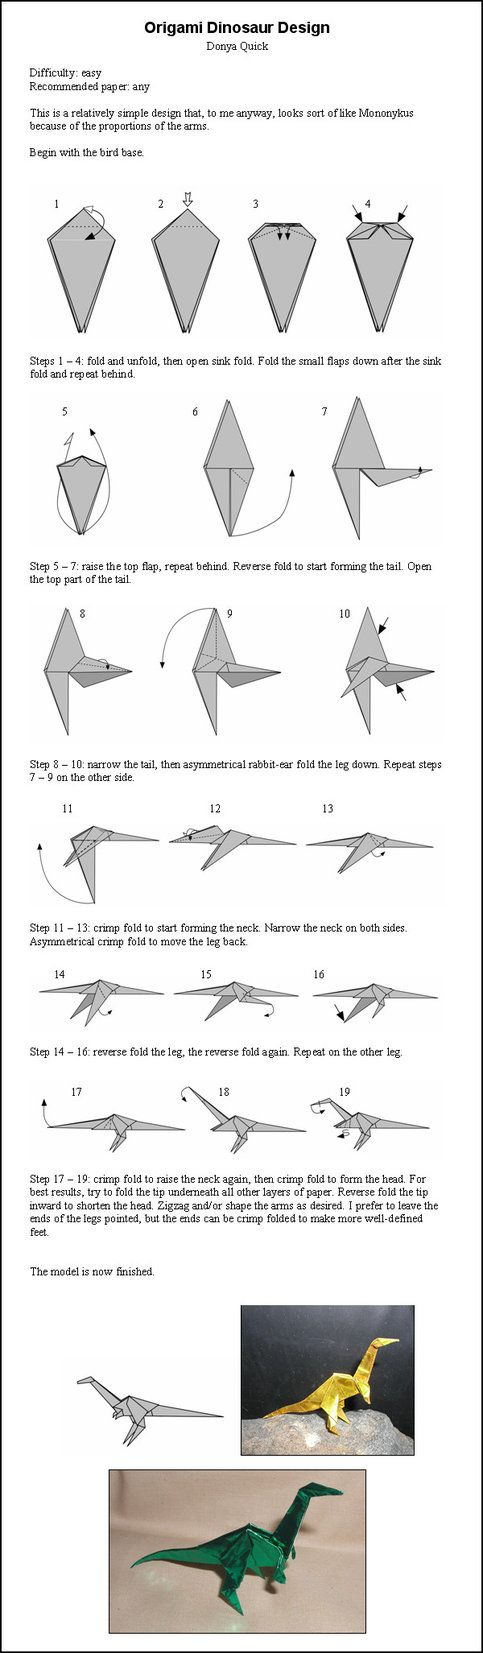 Origami Dinosaur Instructions by ~DonyaQuick on deviantART